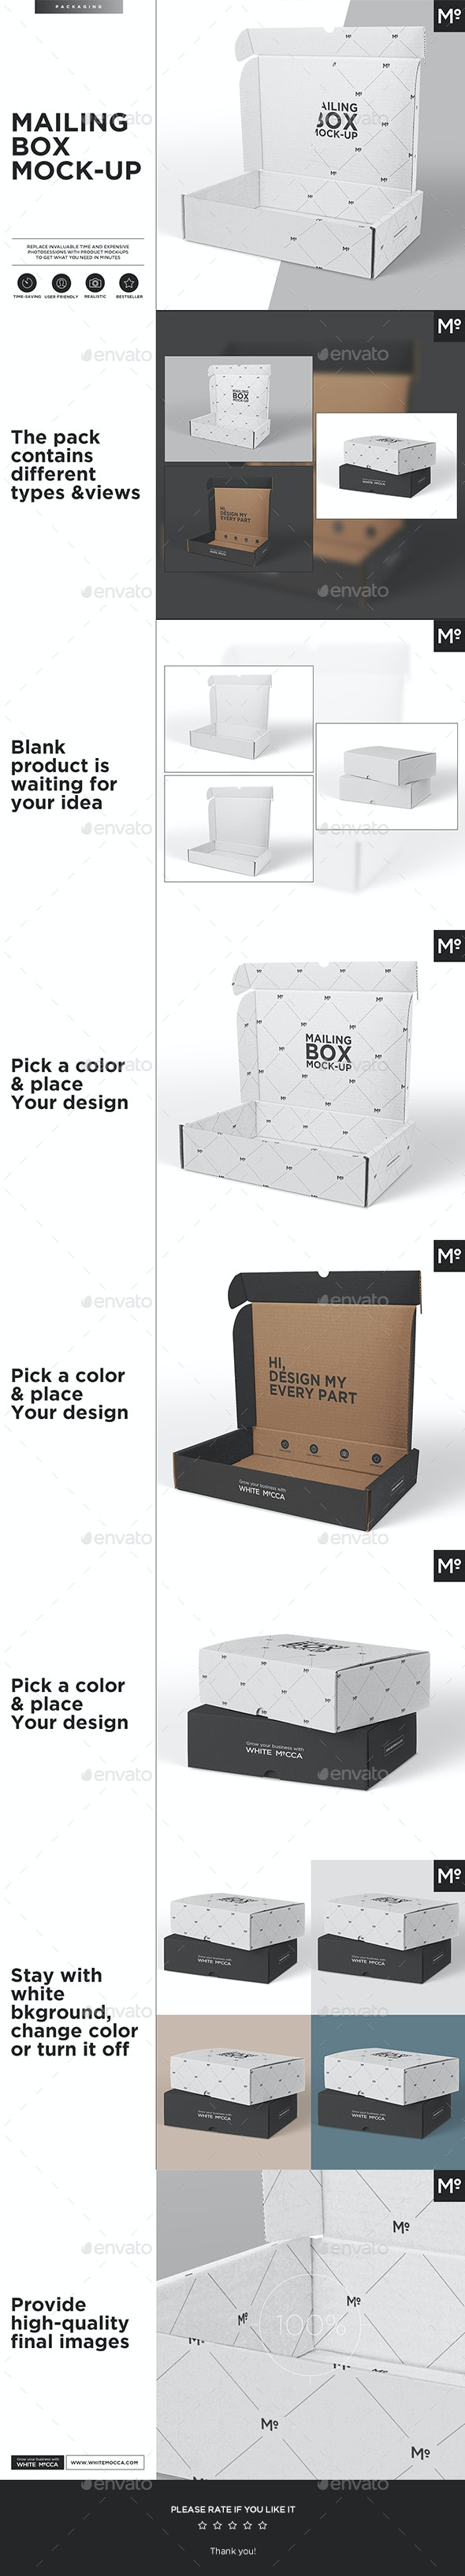 Mailing Box Mock-up - Miscellaneous Print